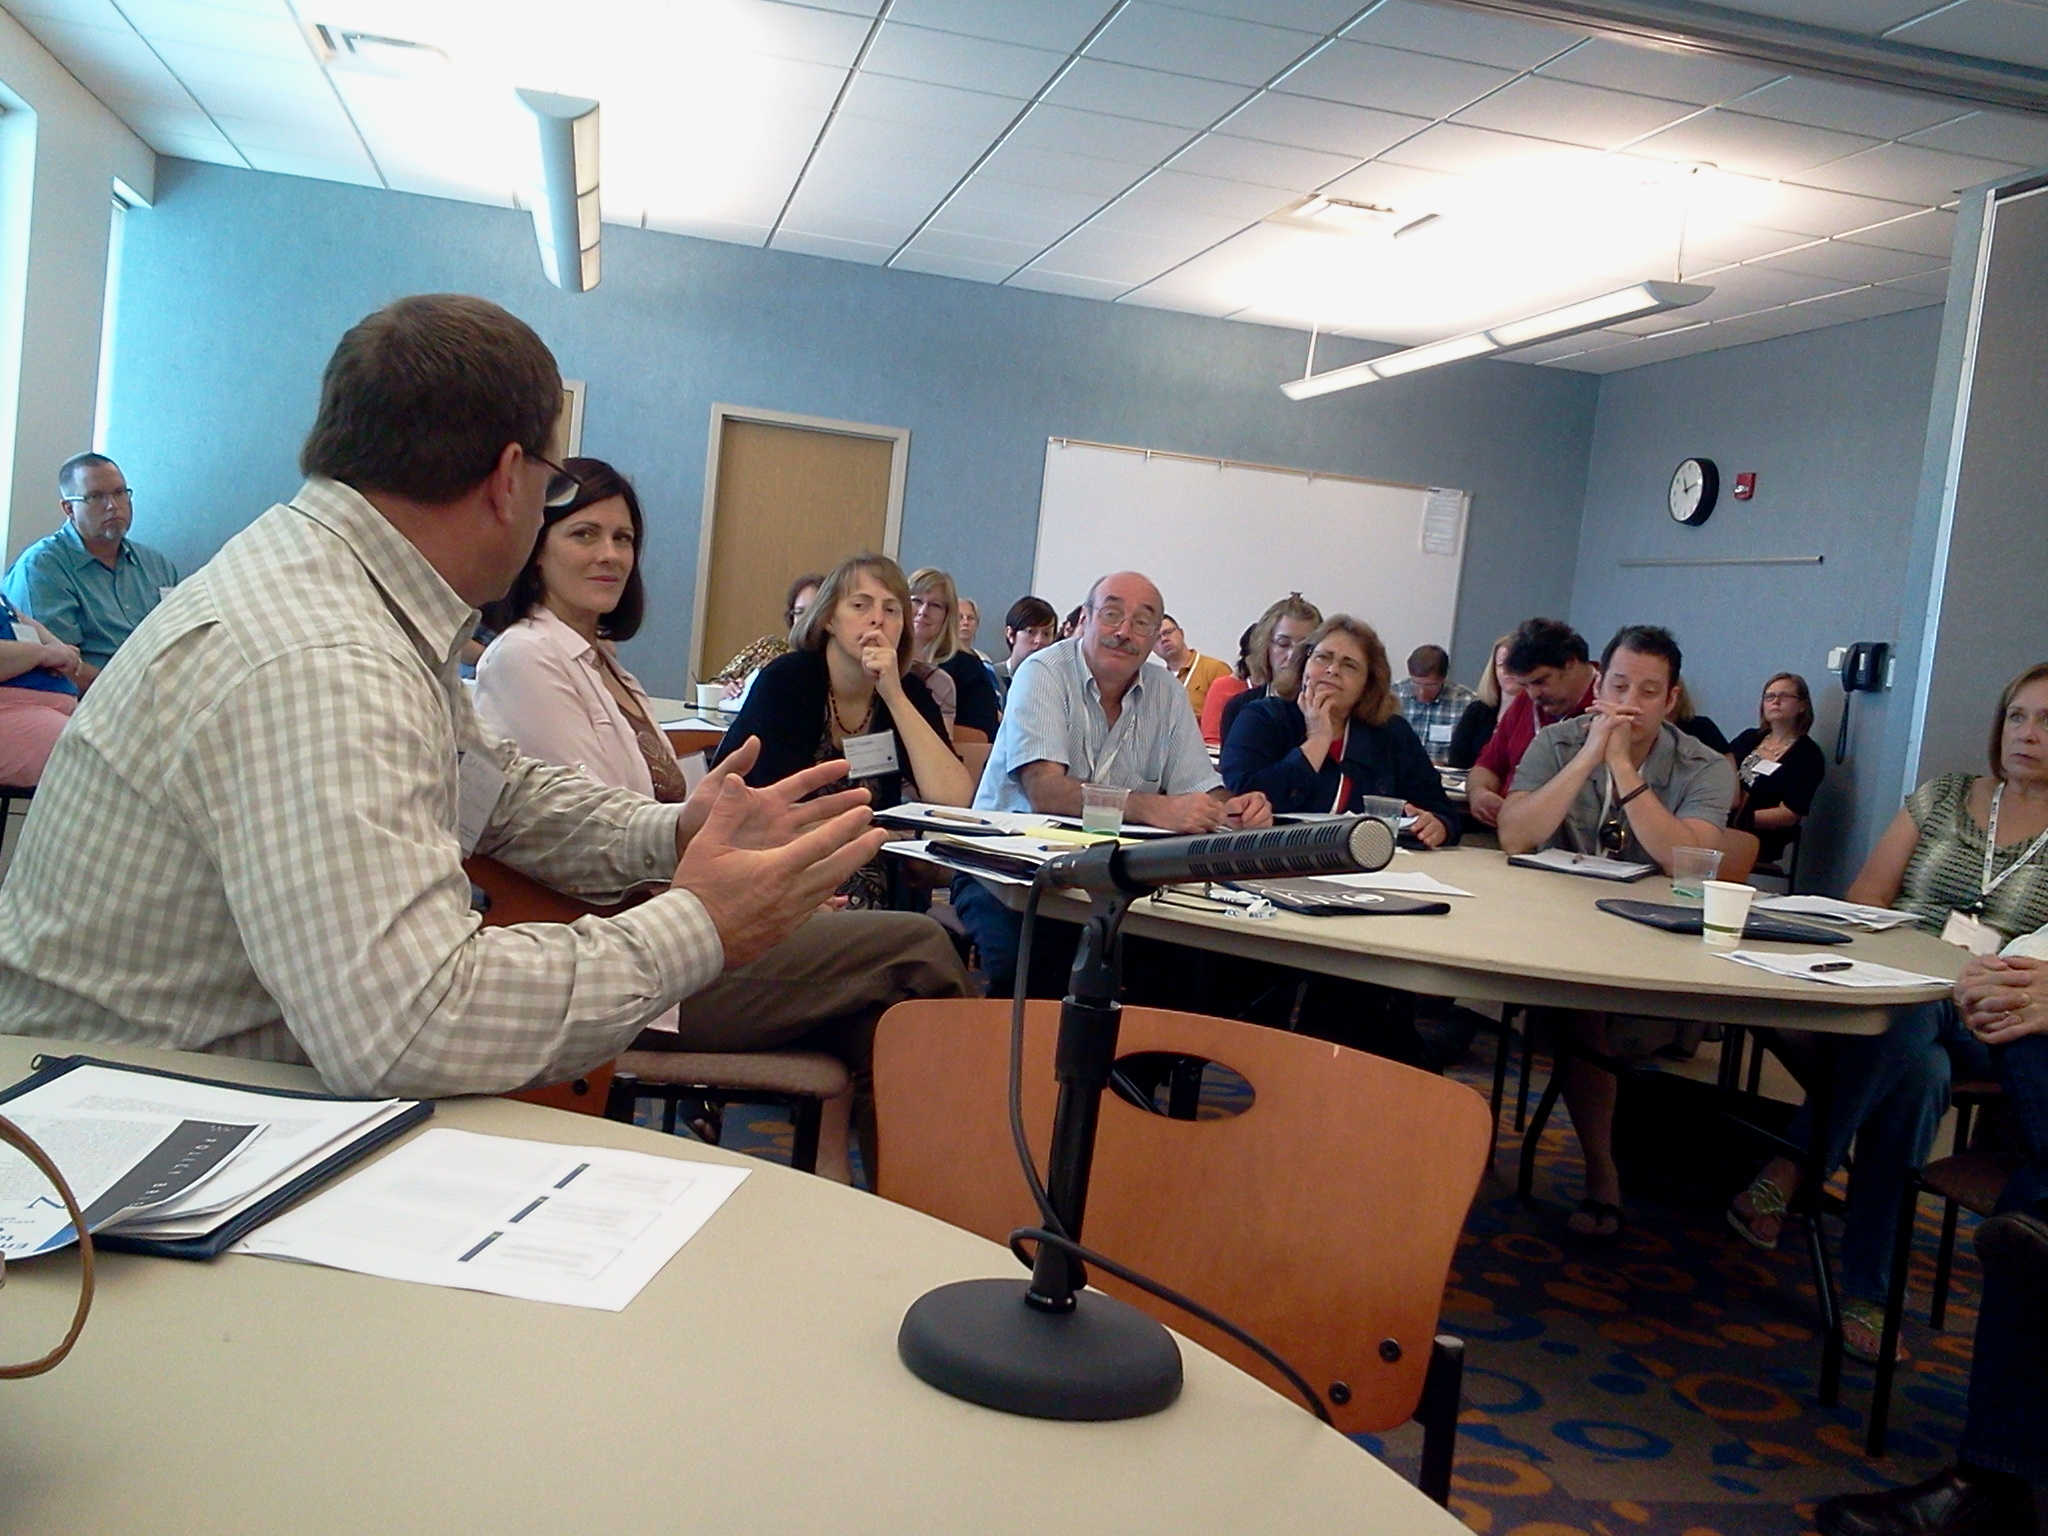 The OACC Student Success Center brings ALP to Ohio's Community Colleges